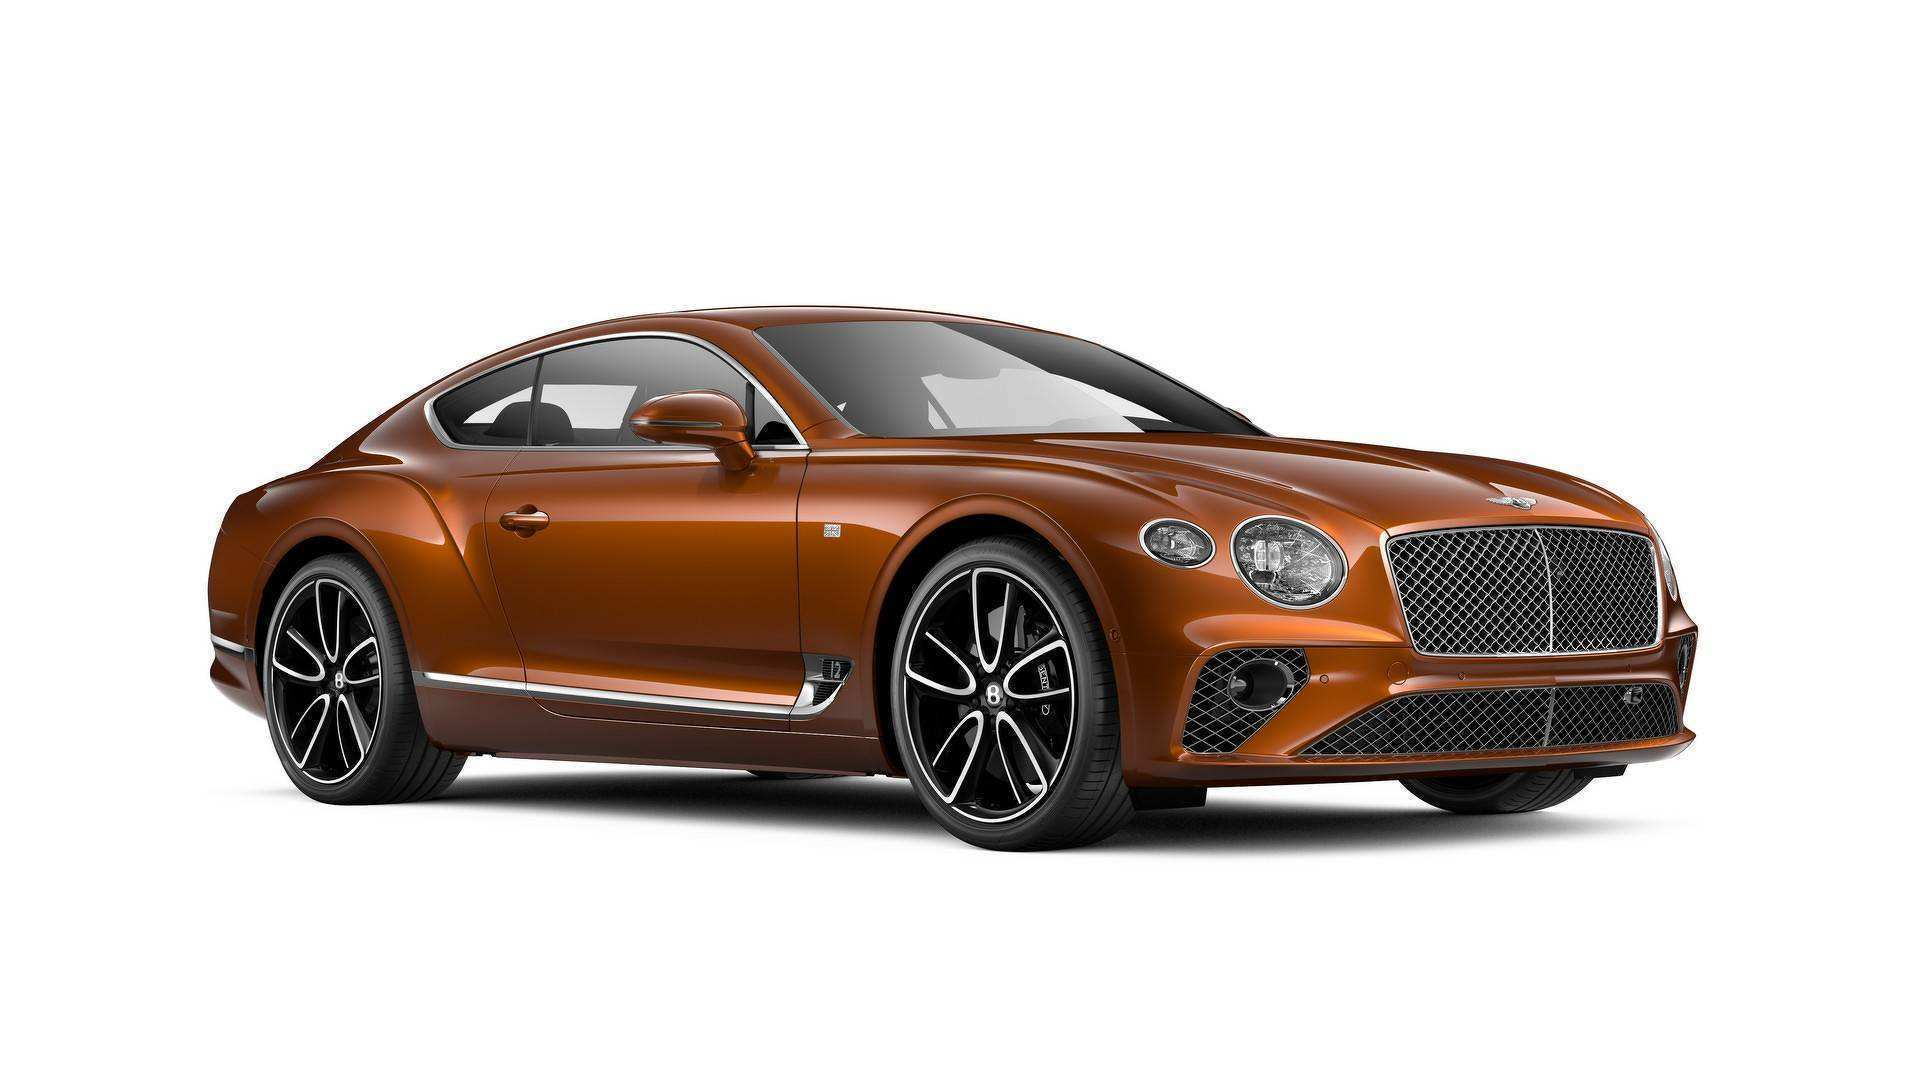 66 Great 2019 Bentley Continental Gt Weight Release Date for 2019 Bentley Continental Gt Weight